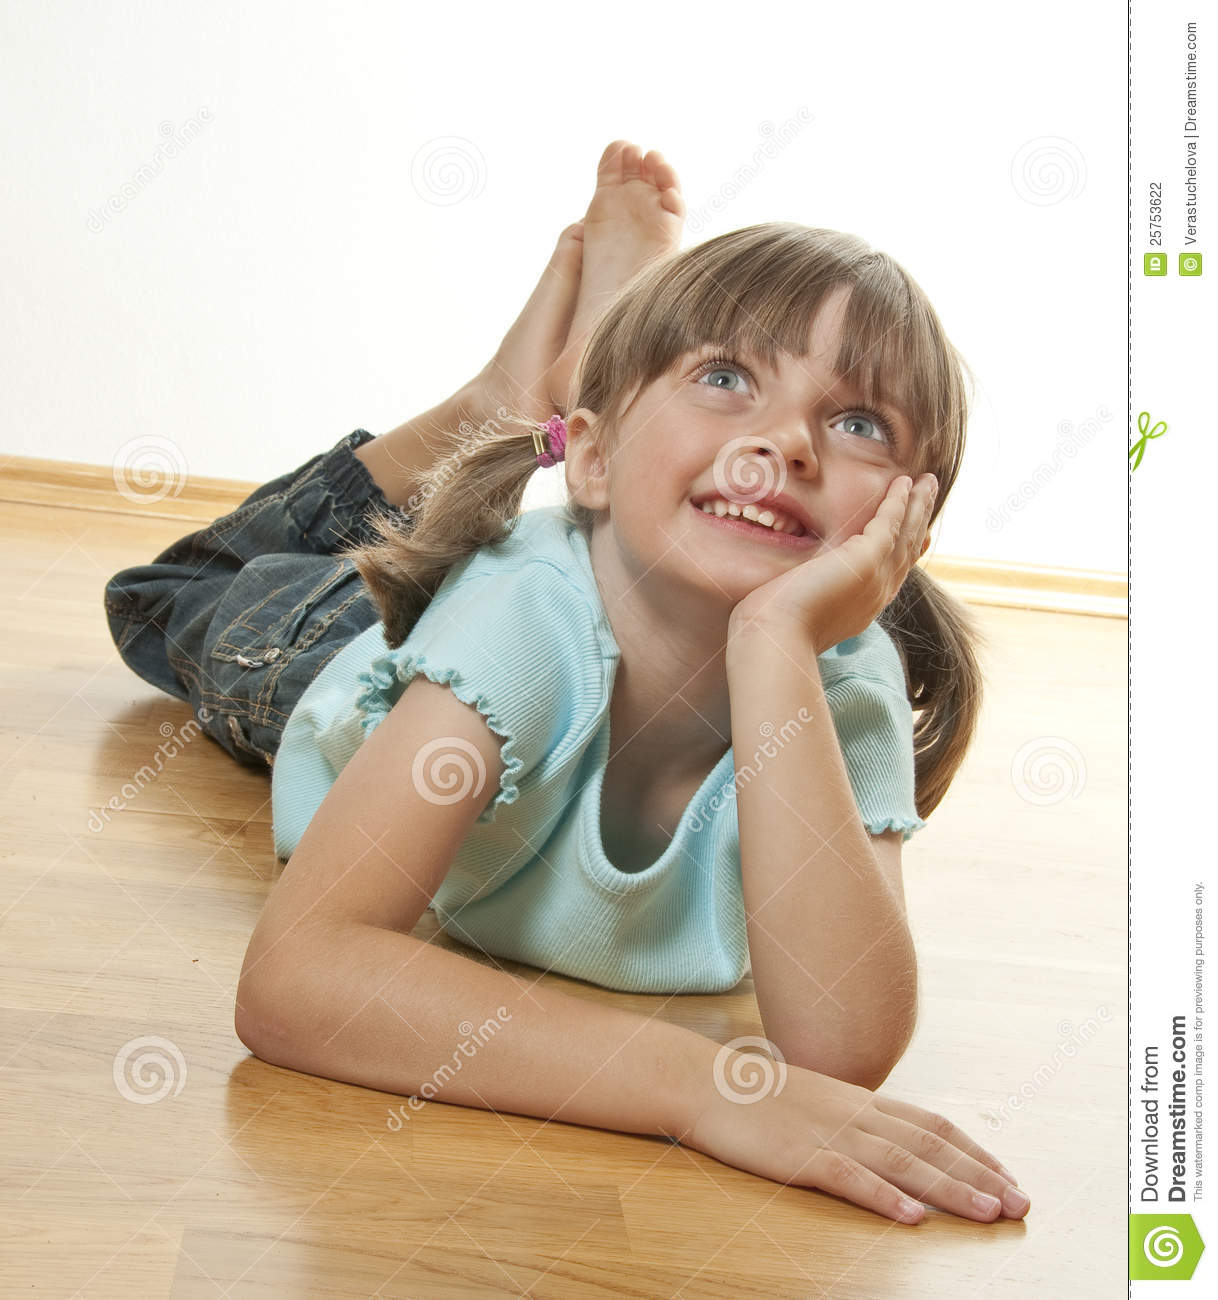 Happy Little Girl Resting On A Wooden Floor Stock